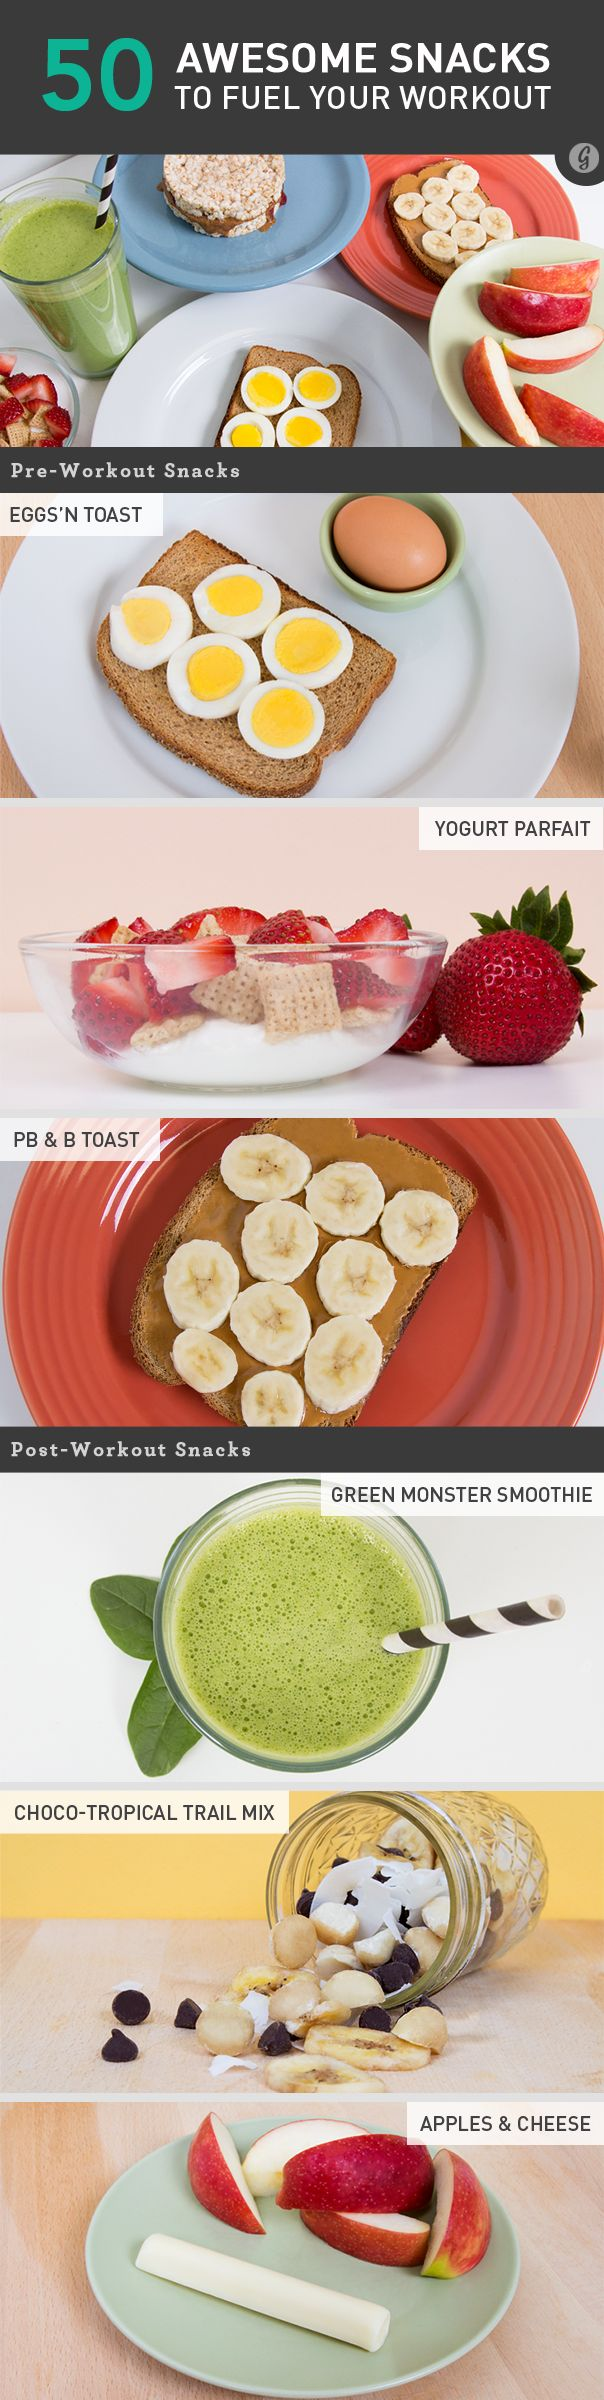 50 Awesome Pre- and Post-Workout Snacks #fitness #workout #snack http://www.weightlossjumpstart.org/how-to-start-losing-weight-for-beginners/